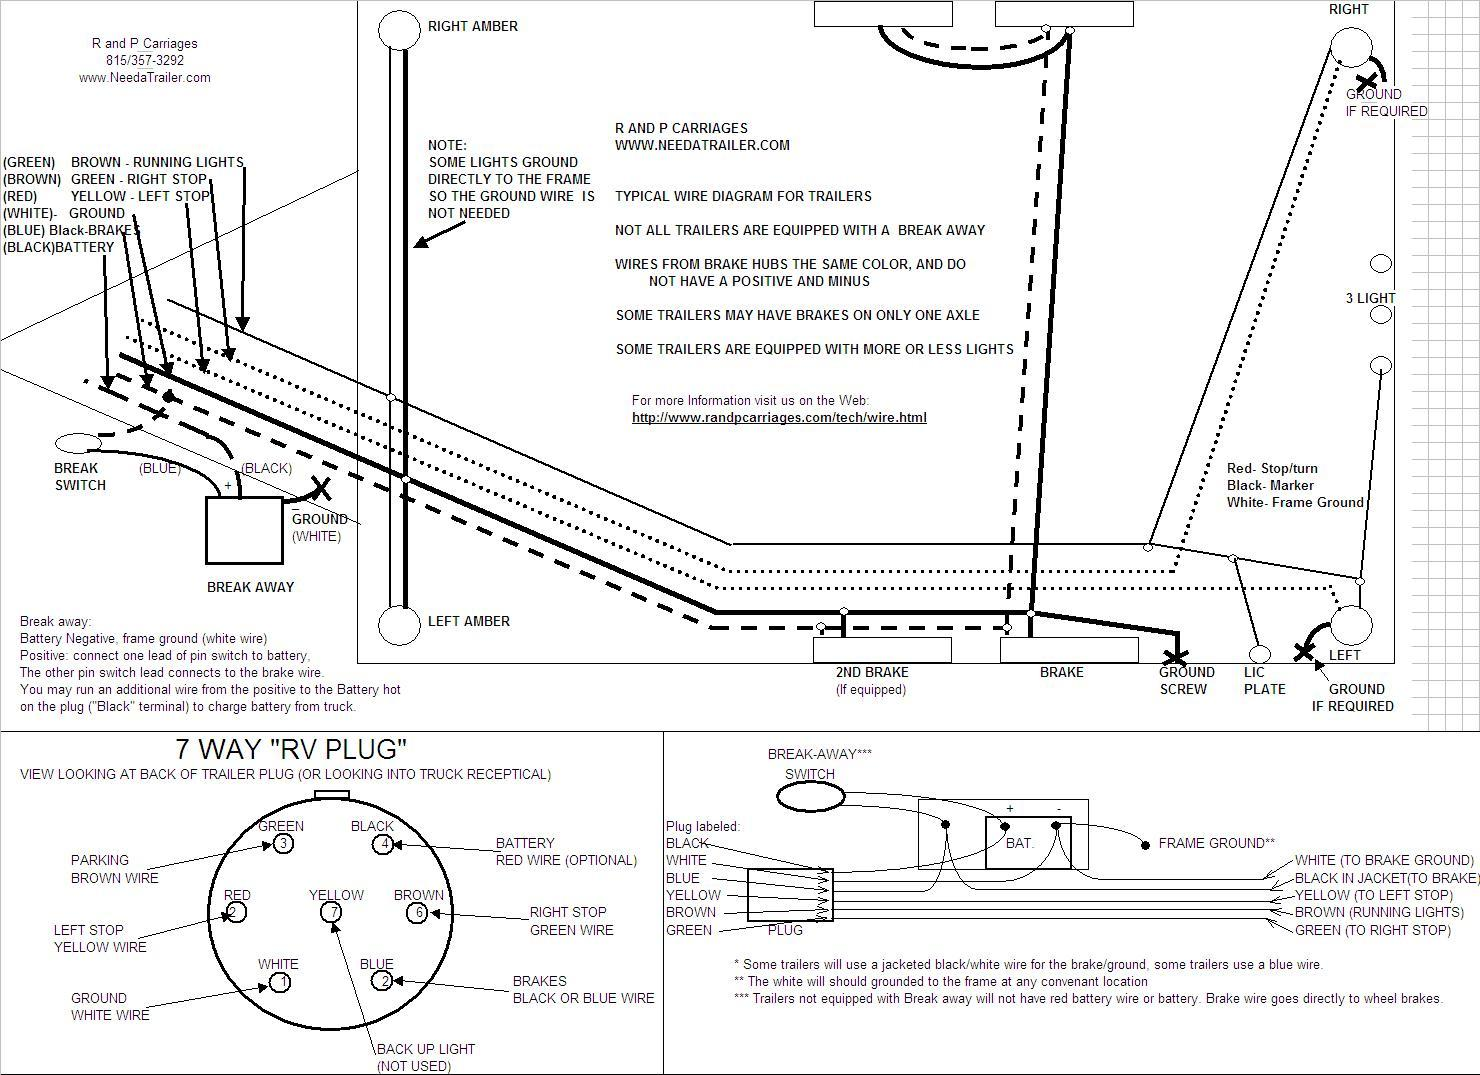 7 way wiring diagram brake controller installation instructions wiring diagram for seven way trailer plug at reclaimingppi.co